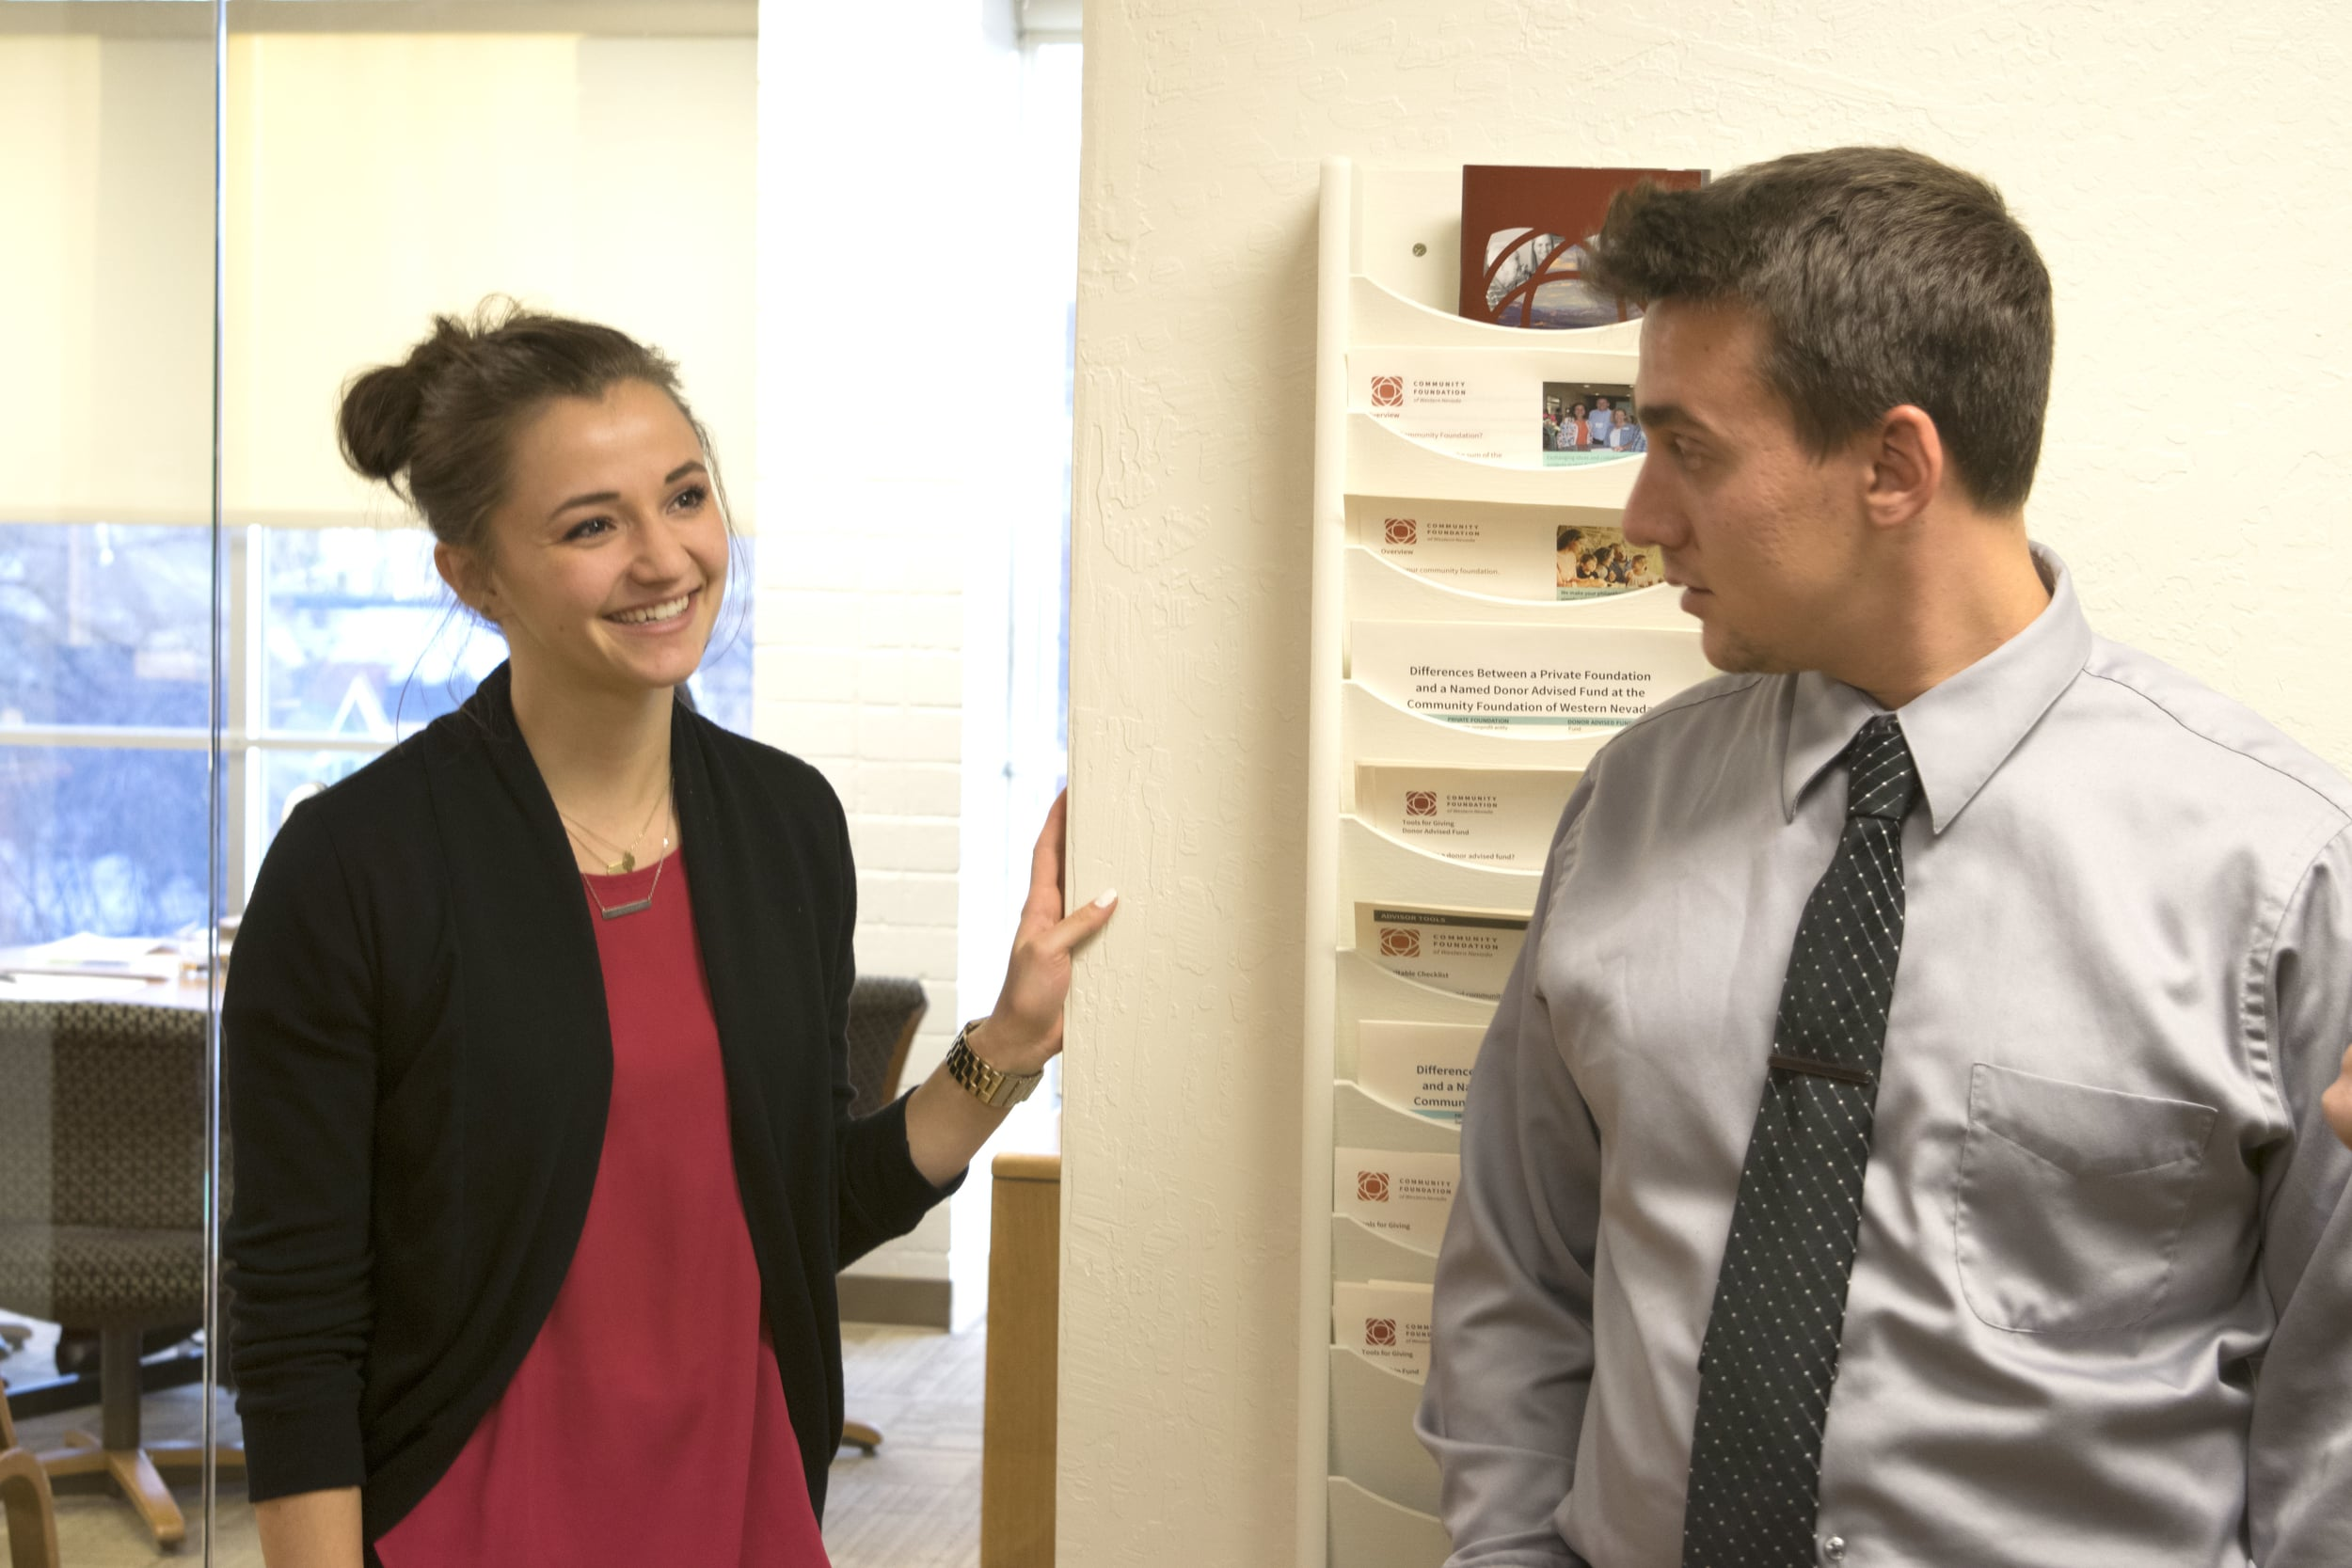 Nick works with colleague Camille Glanzmann at the Foundation on homeless youth issues. Photo by Jose Olivares.